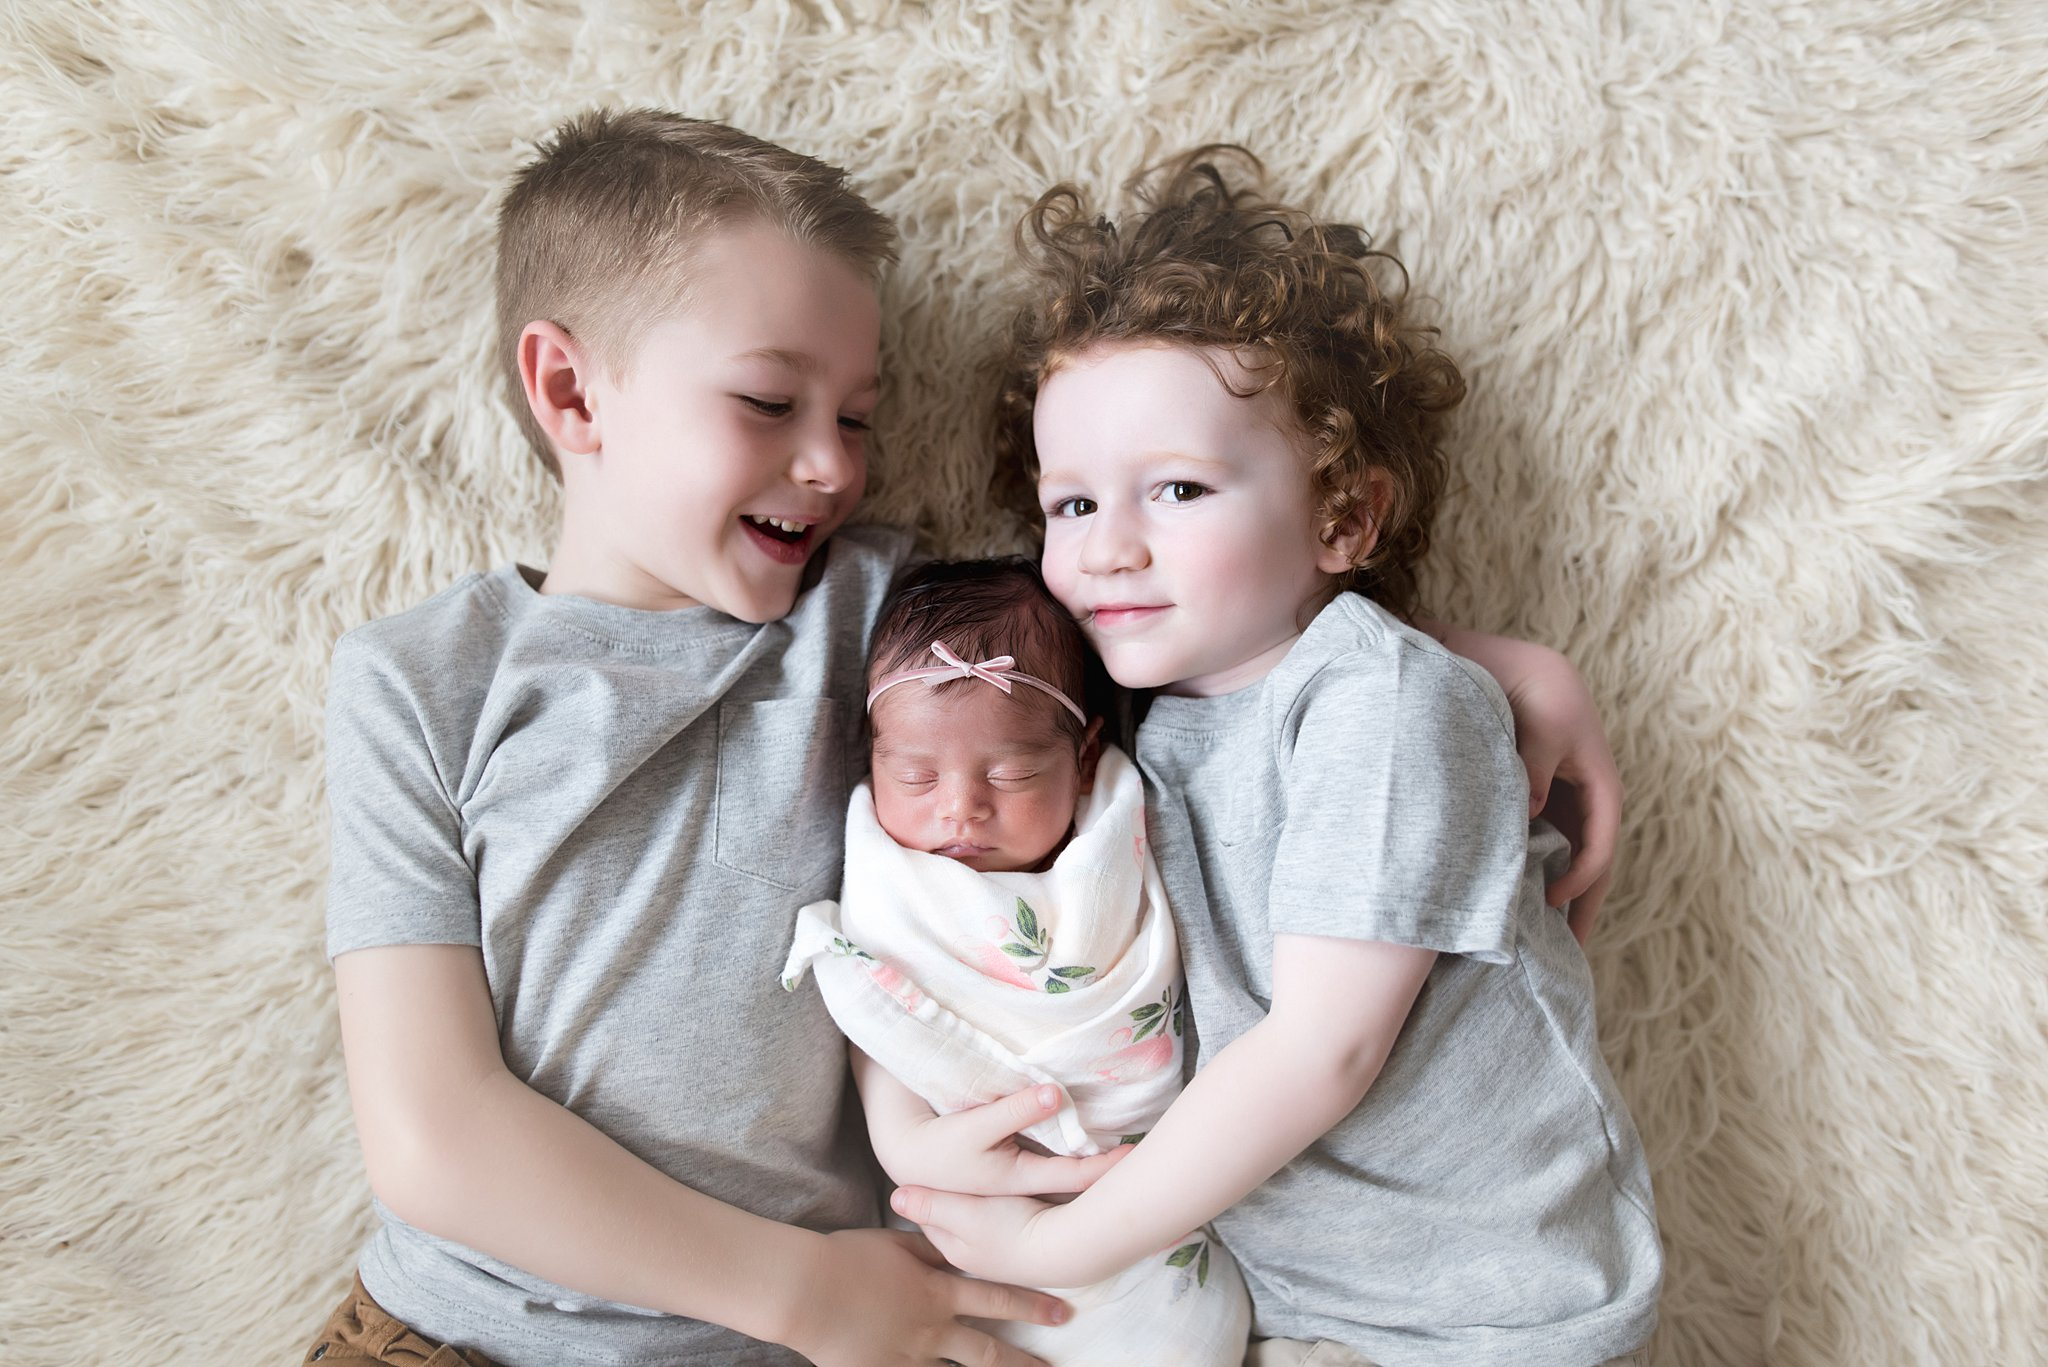 brothers lay together with their new baby sister between them